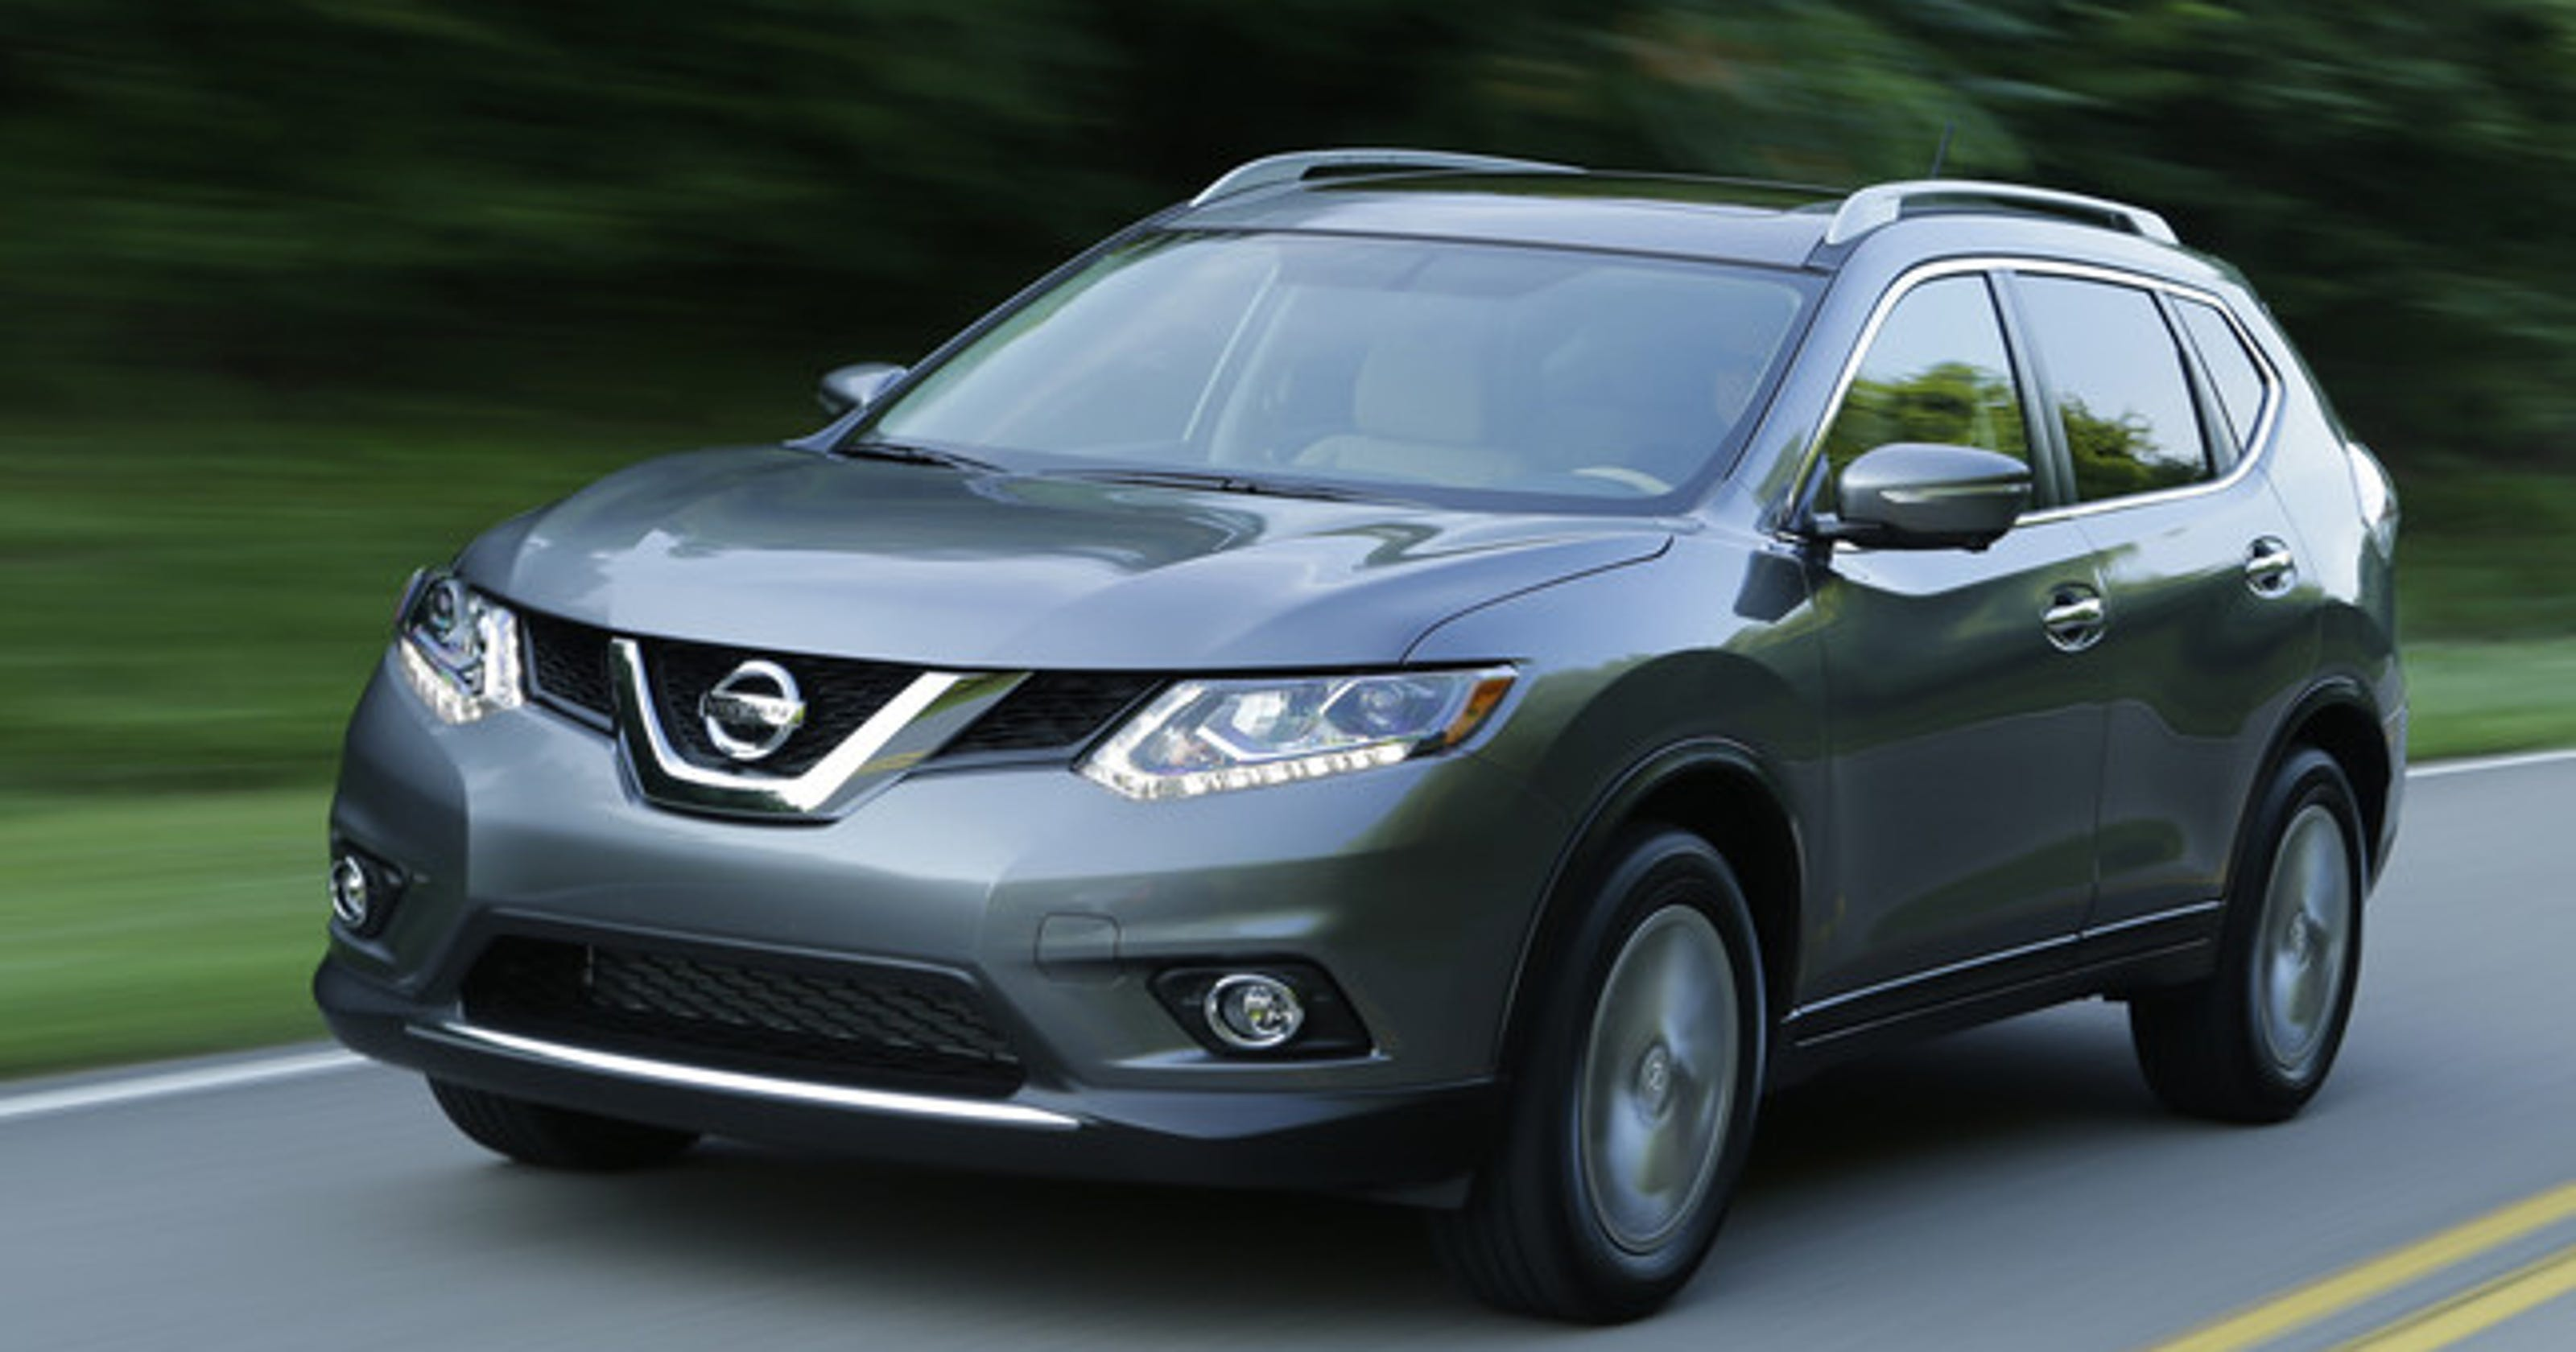 Maple Shade man sues Nissan over sunroof